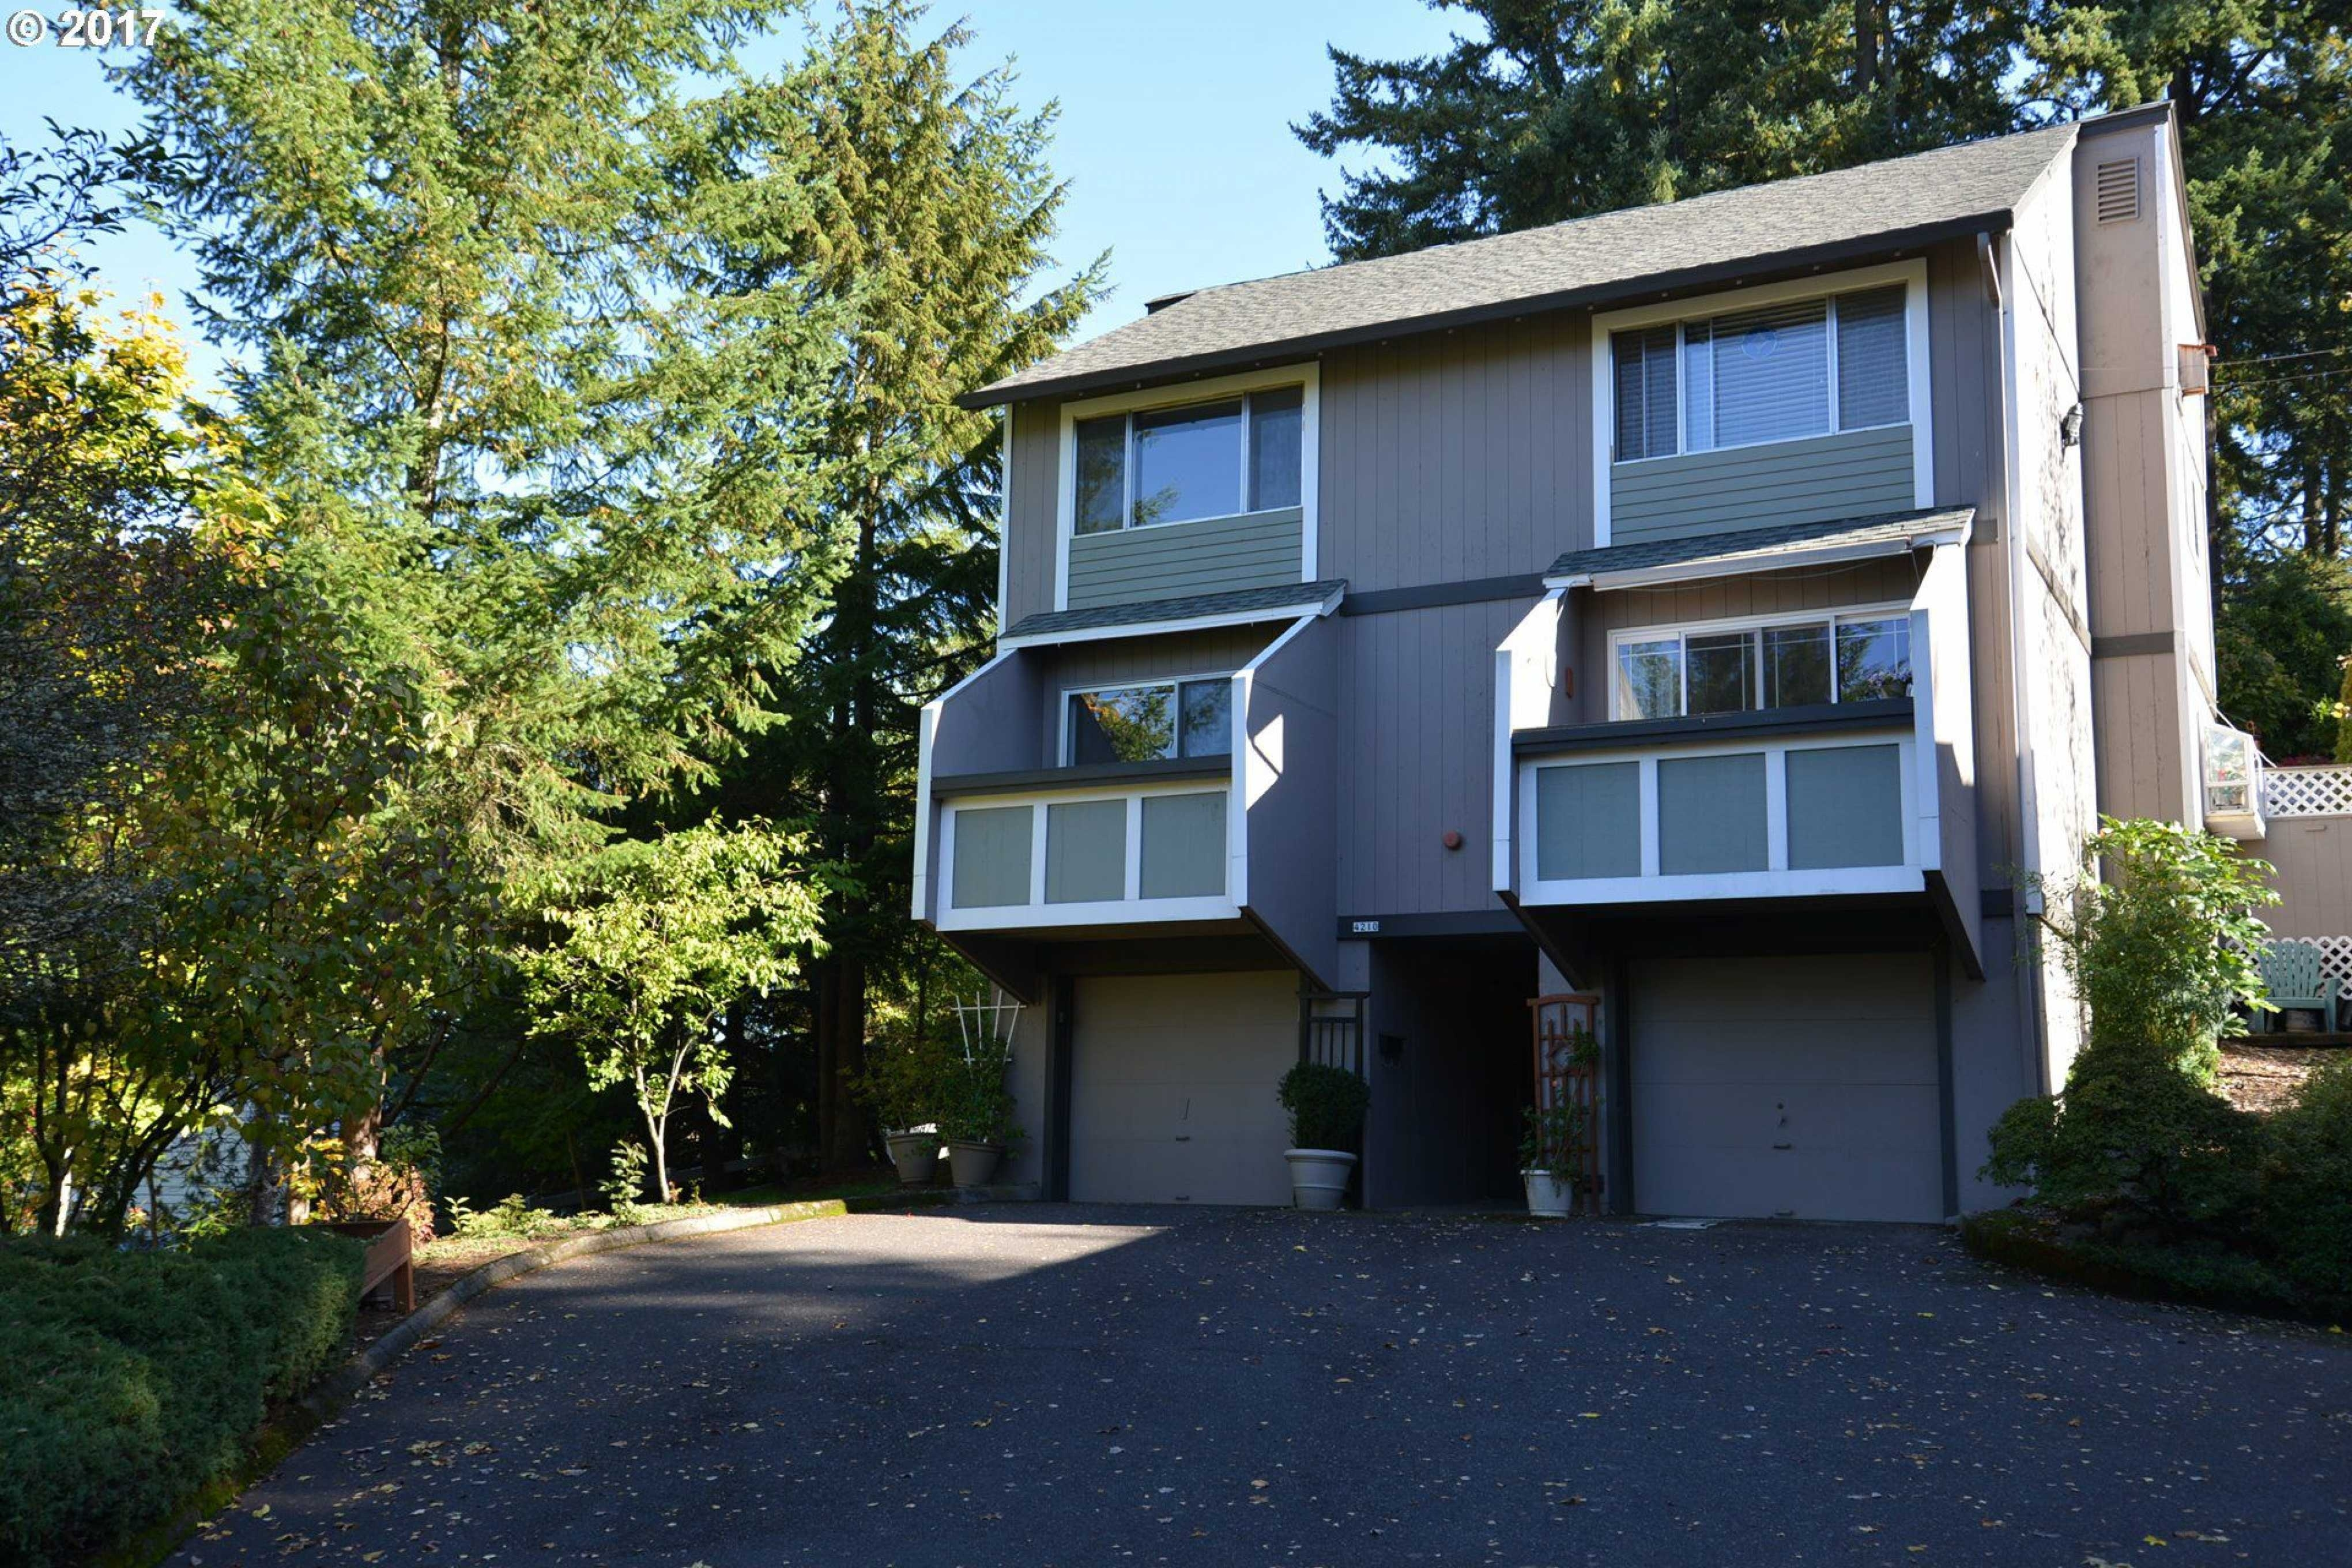 25 Ideas Of Cornell Manor Apartments Portland Orwalk Score. Cornell in Garden Manor Apartments